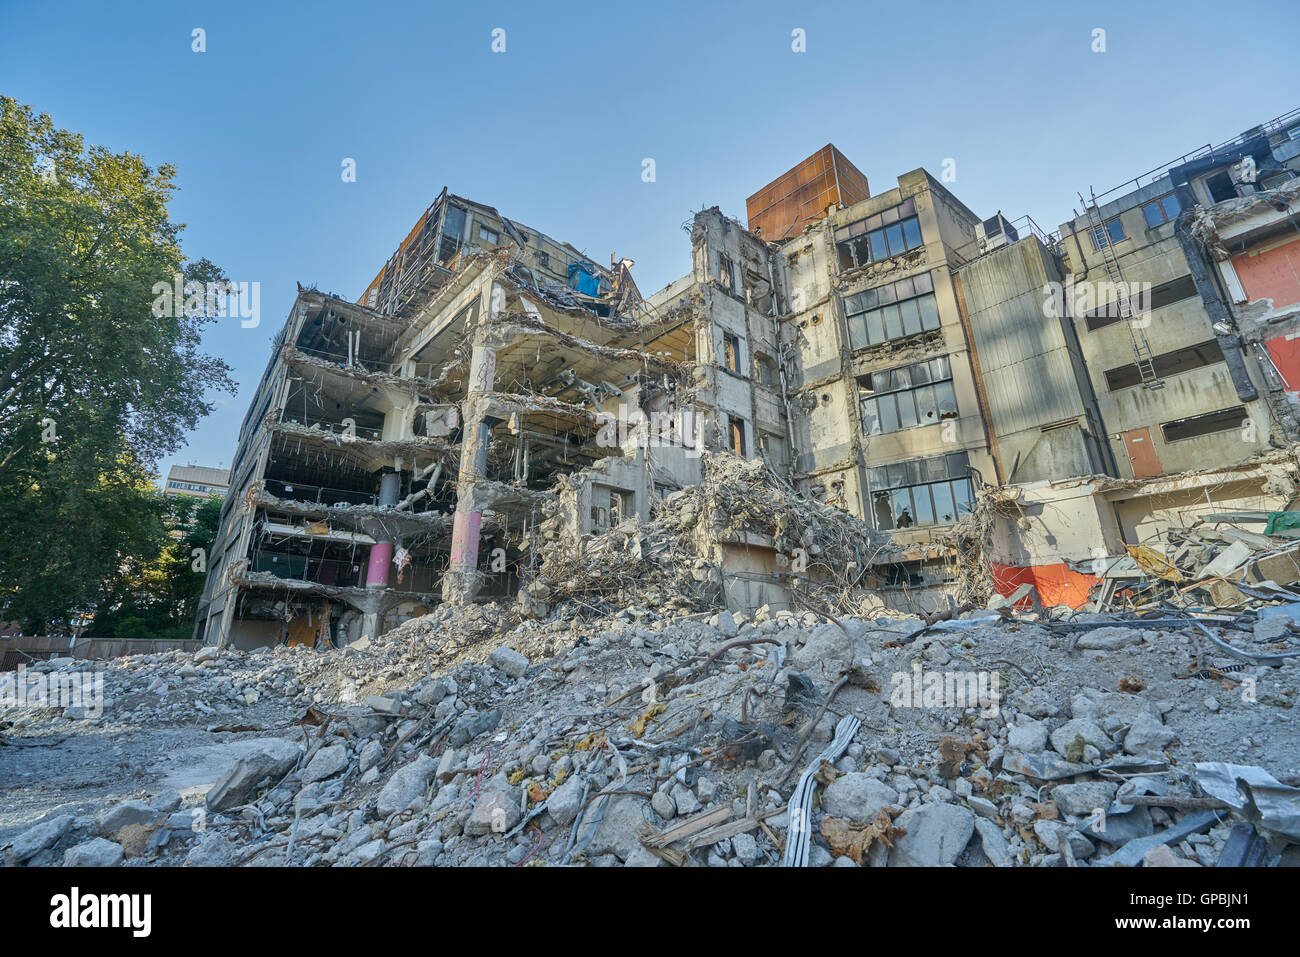 demolition site London.     60s buildings demolished, London - Stock Image